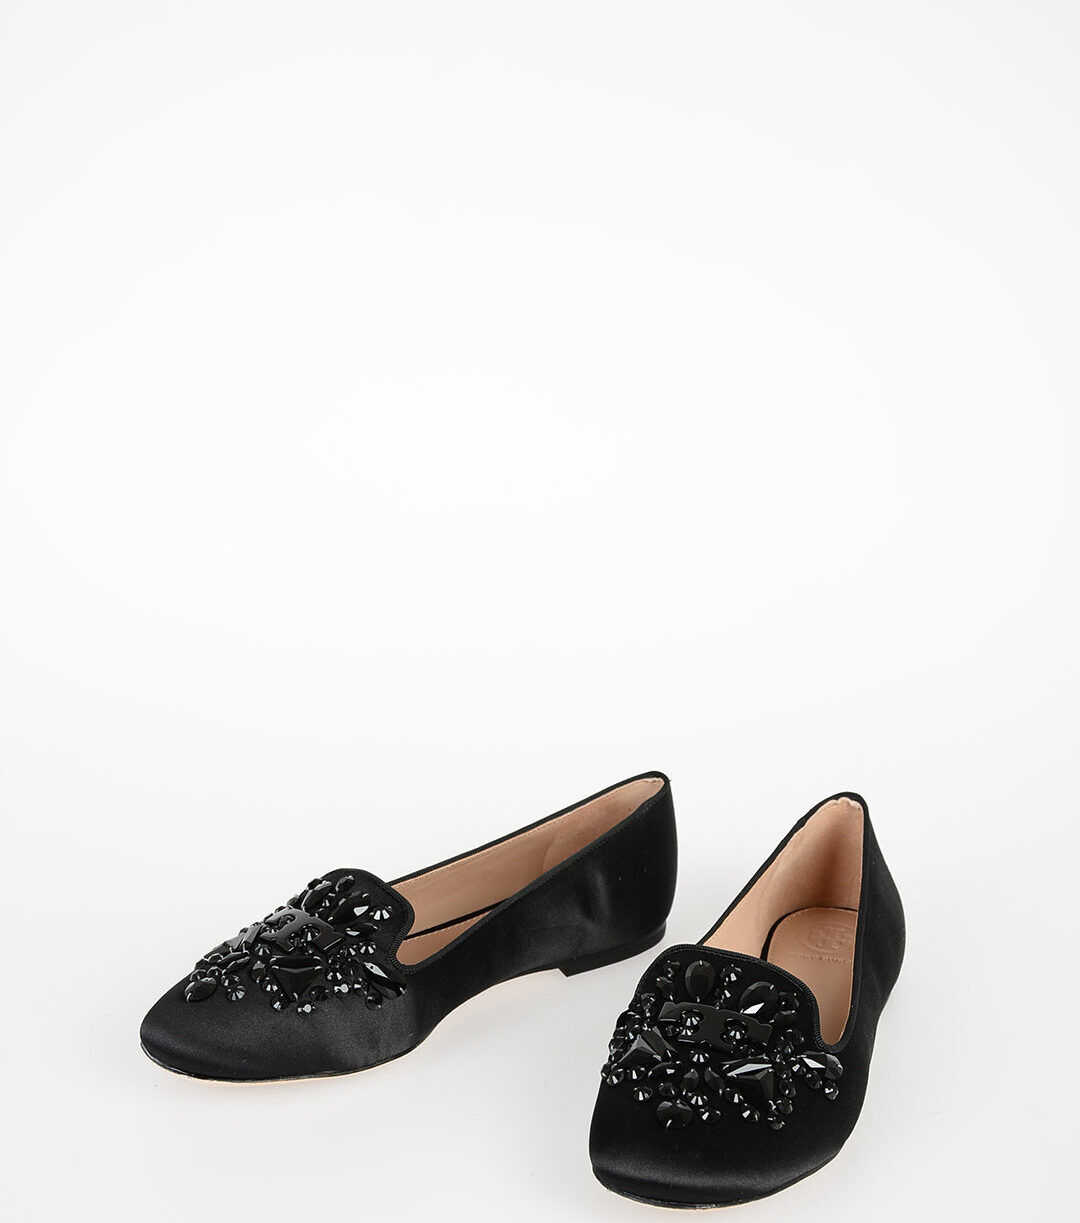 Tory Burch Embroidered Jewel DELPHINE Ballet BLACK